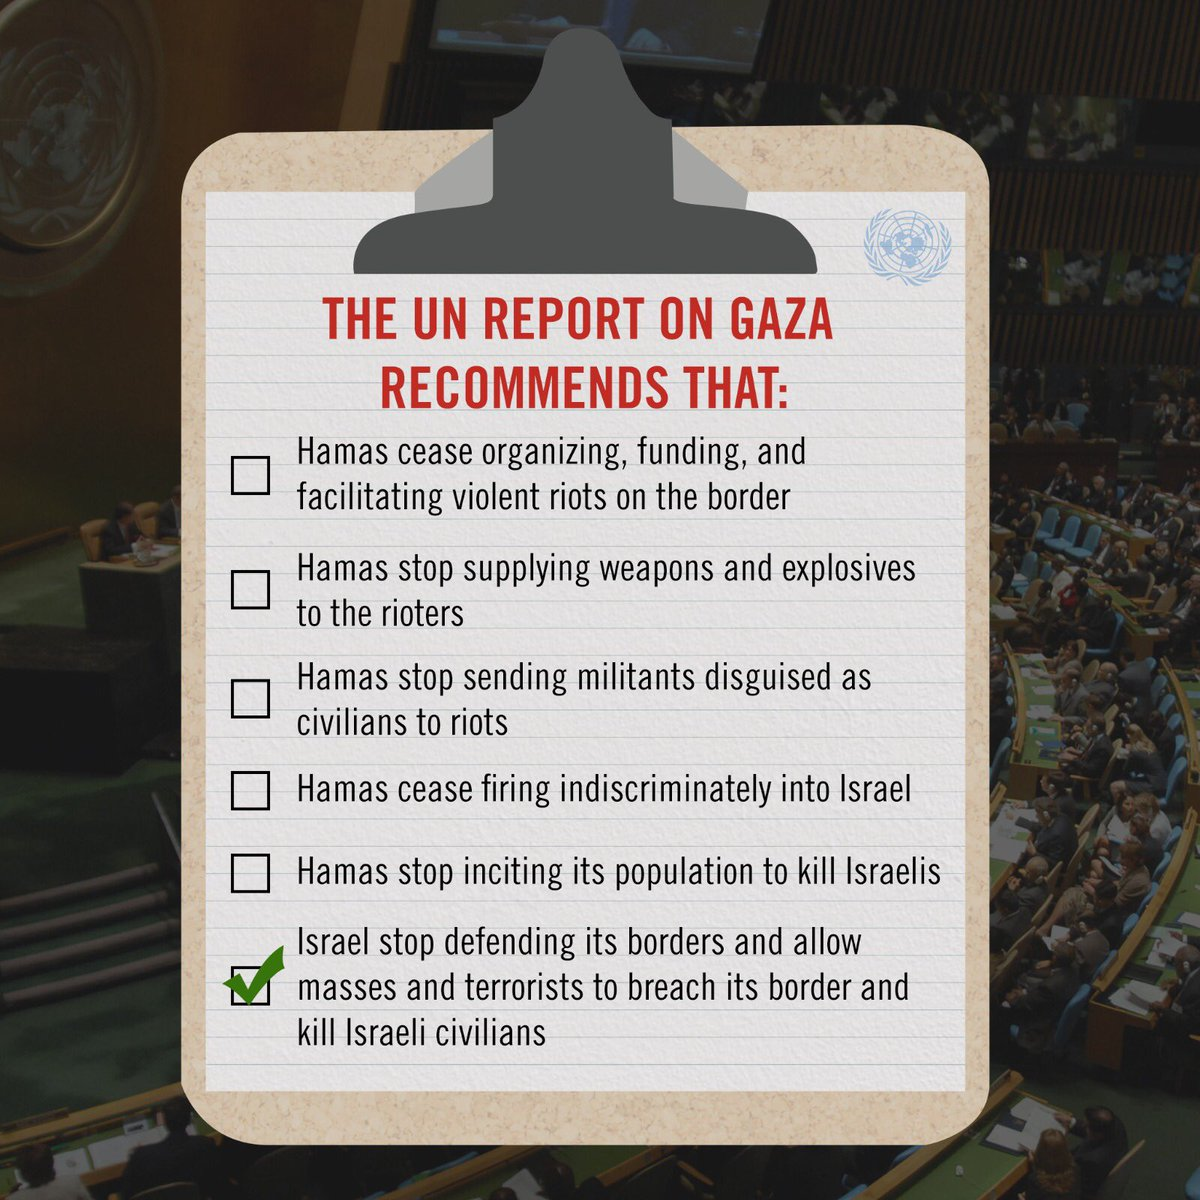 We think the @UN forgot some recommendations in its report on the Gaza riots... @UN_HRC<br>http://pic.twitter.com/XdpHMkXWCG